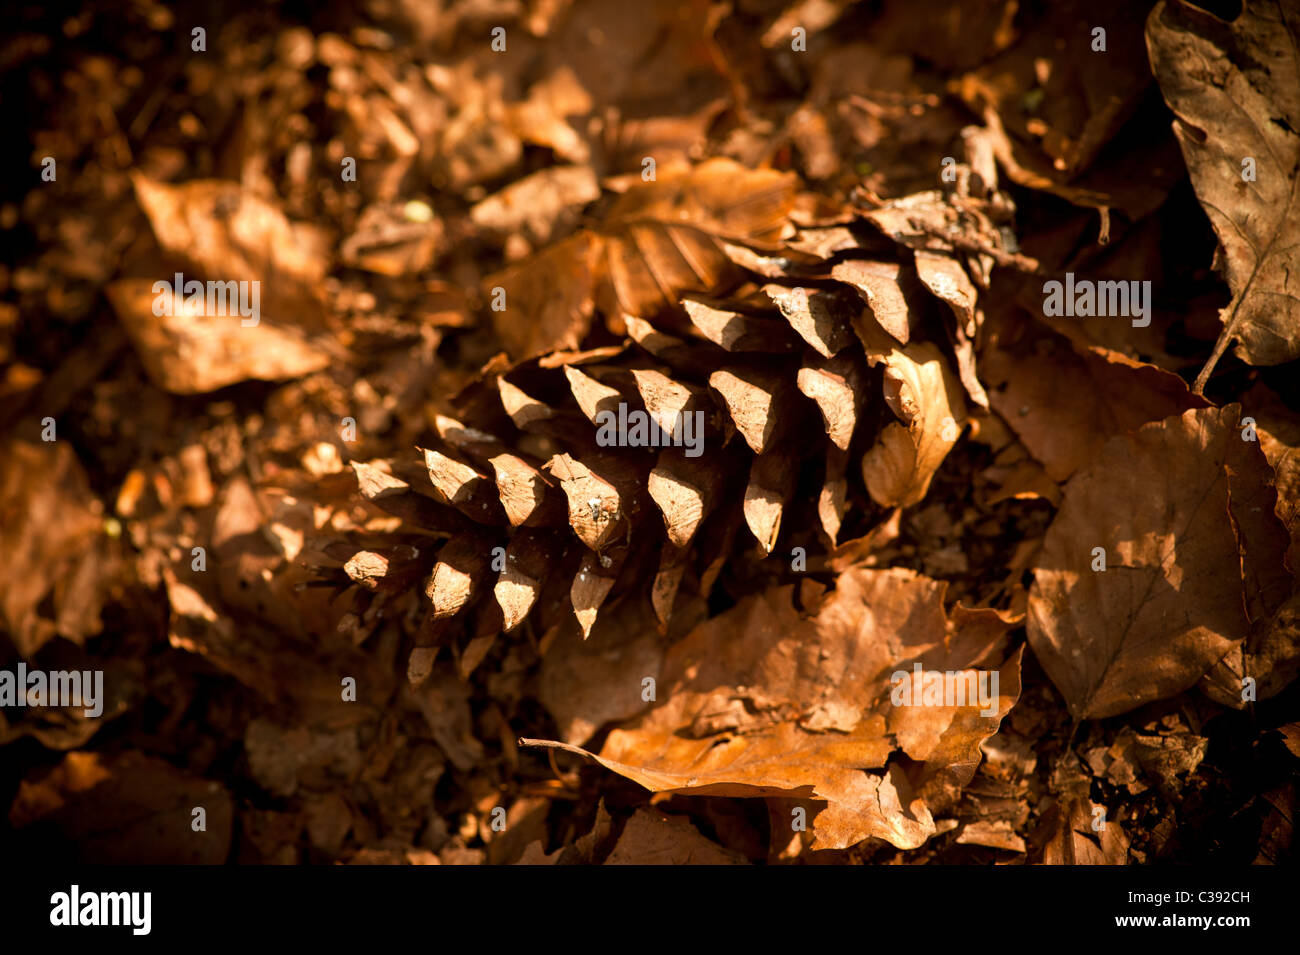 fir cone on autumn leaves - Stock Image